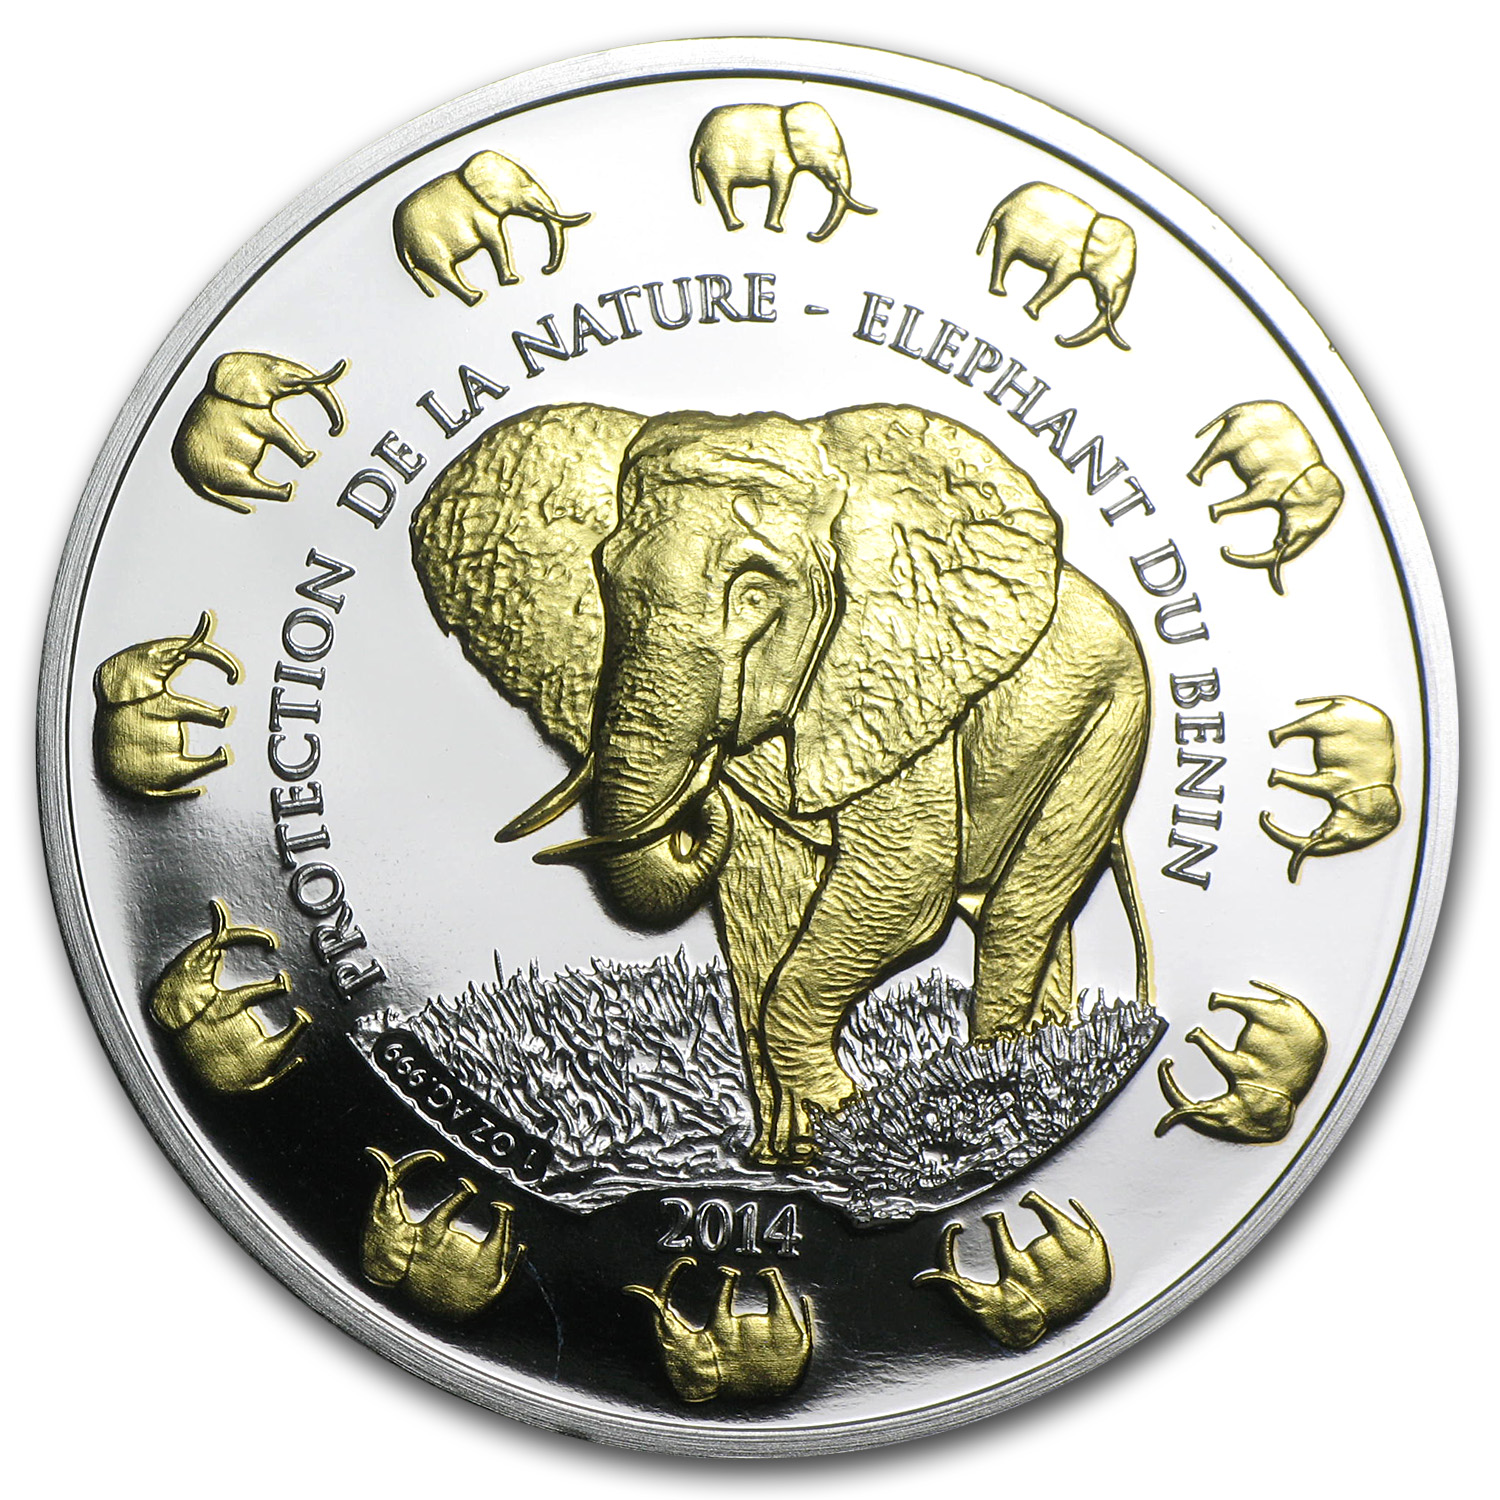 Benin 2014 1 oz Silver Protection de la Nature - Gilded Elephant